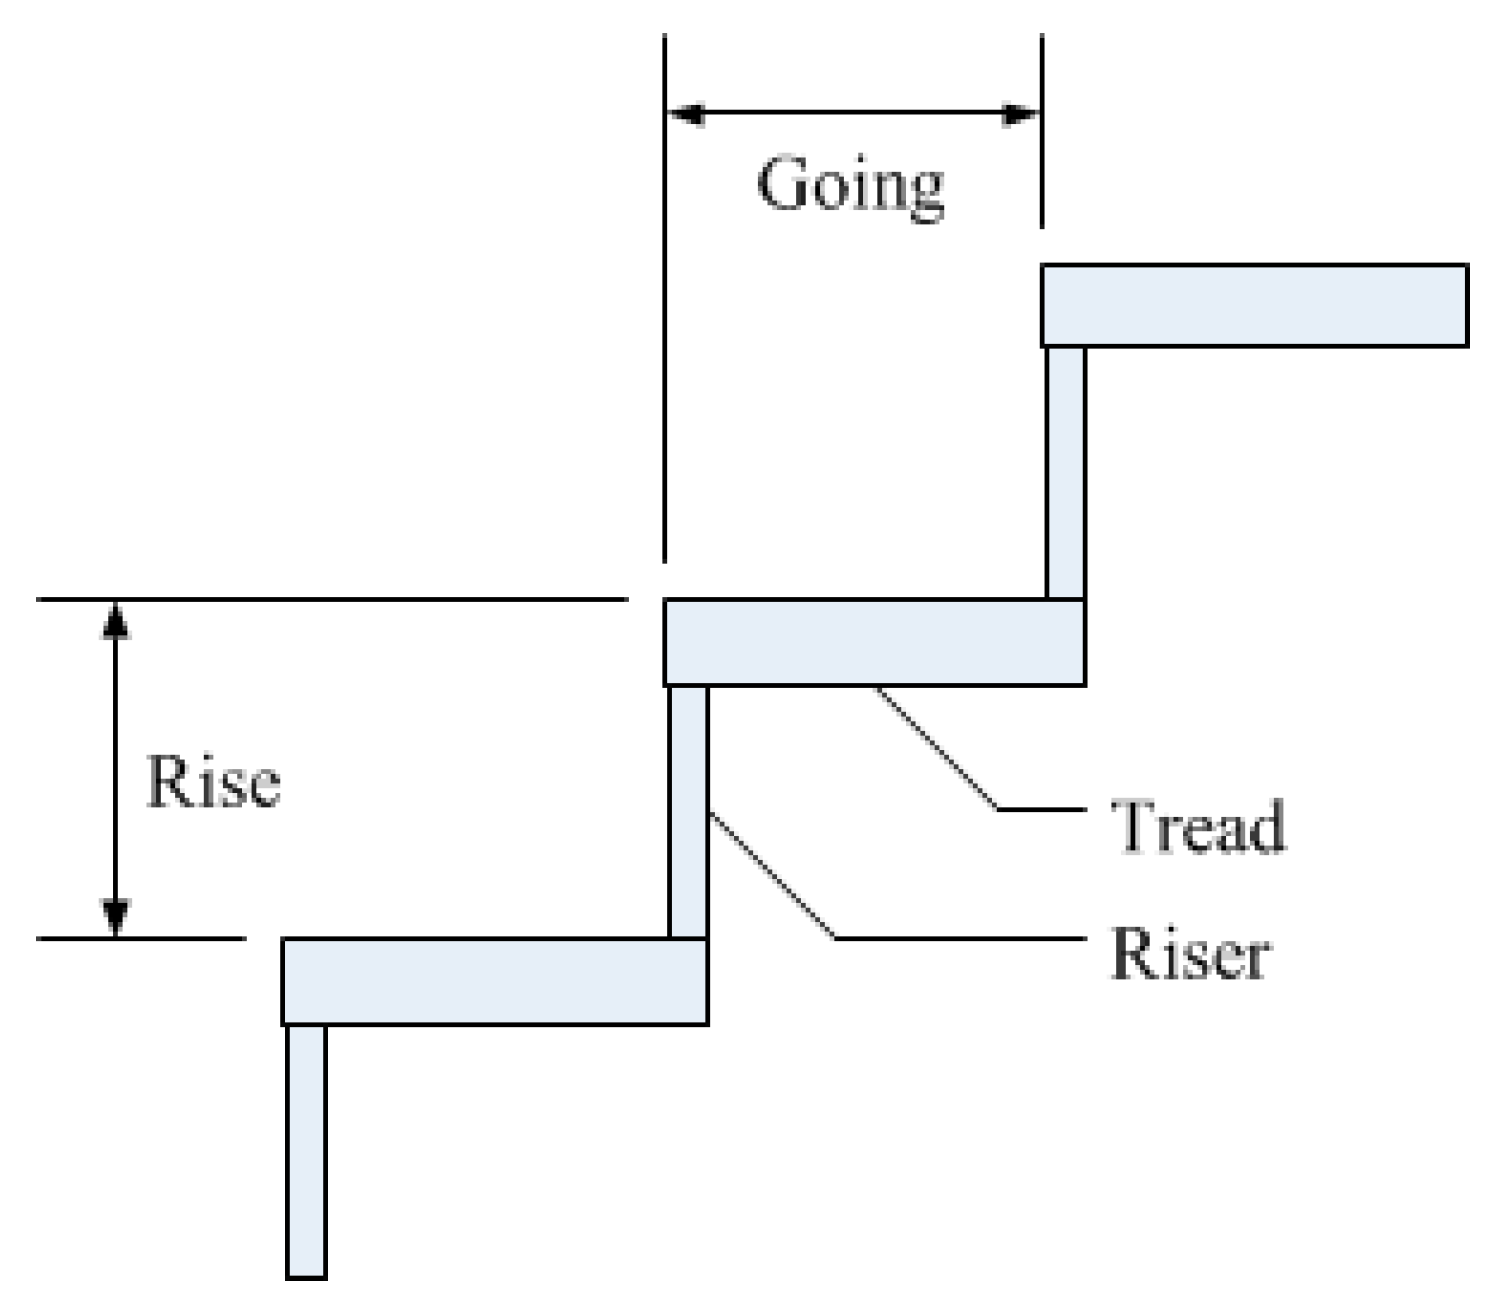 Sensors Free Full Text An Indoor Obstacle Detection System Using Looking 4 Simple Ir Circuit For 15 27116 G023 1024